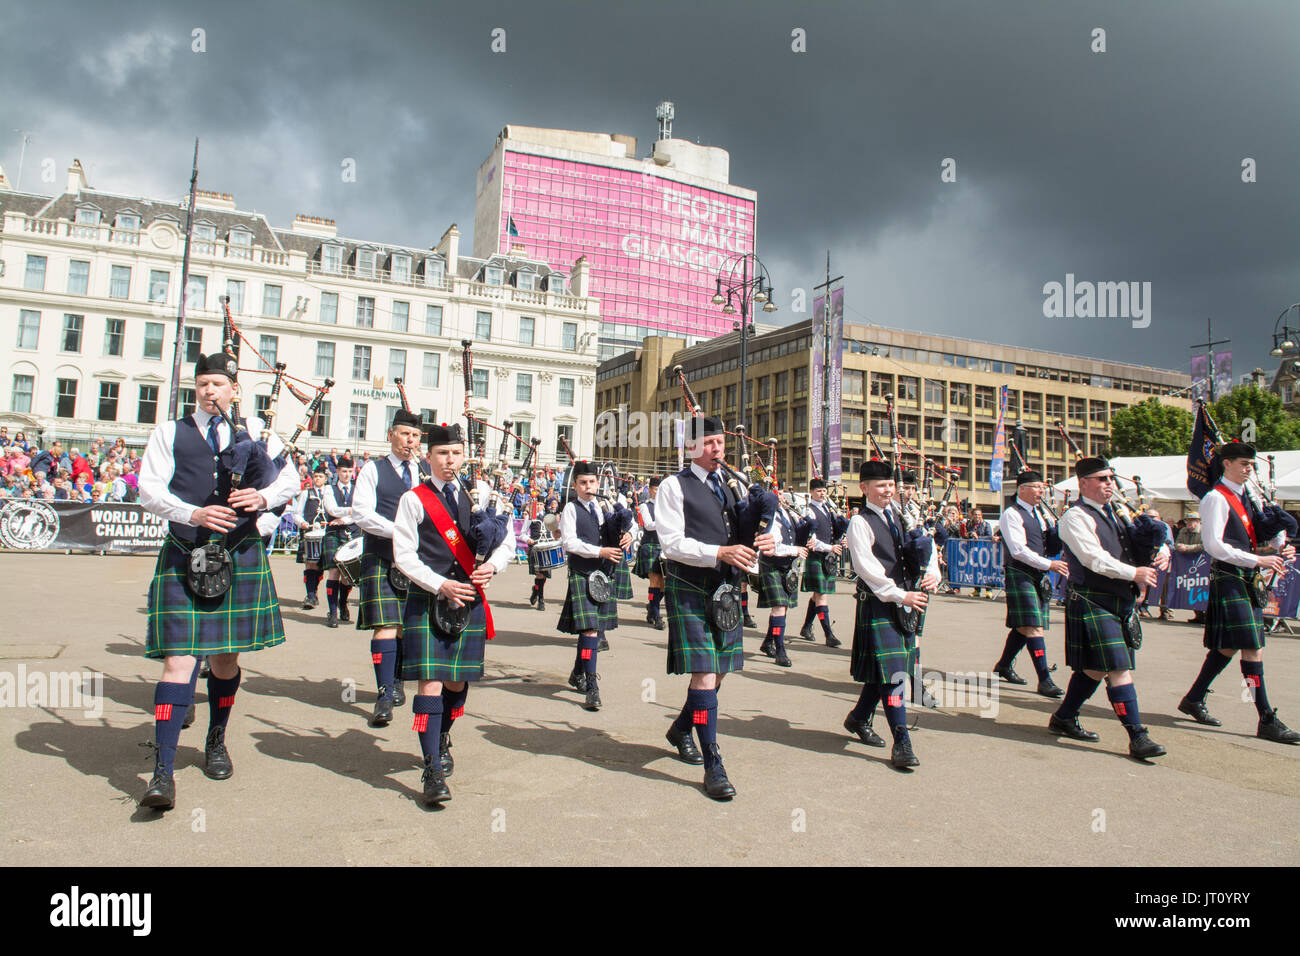 George Square, Glasgow, Schottland, Großbritannien. 7 Aug, 2017 Rohrleitungen Live! - Der Glasgow International Stockfoto